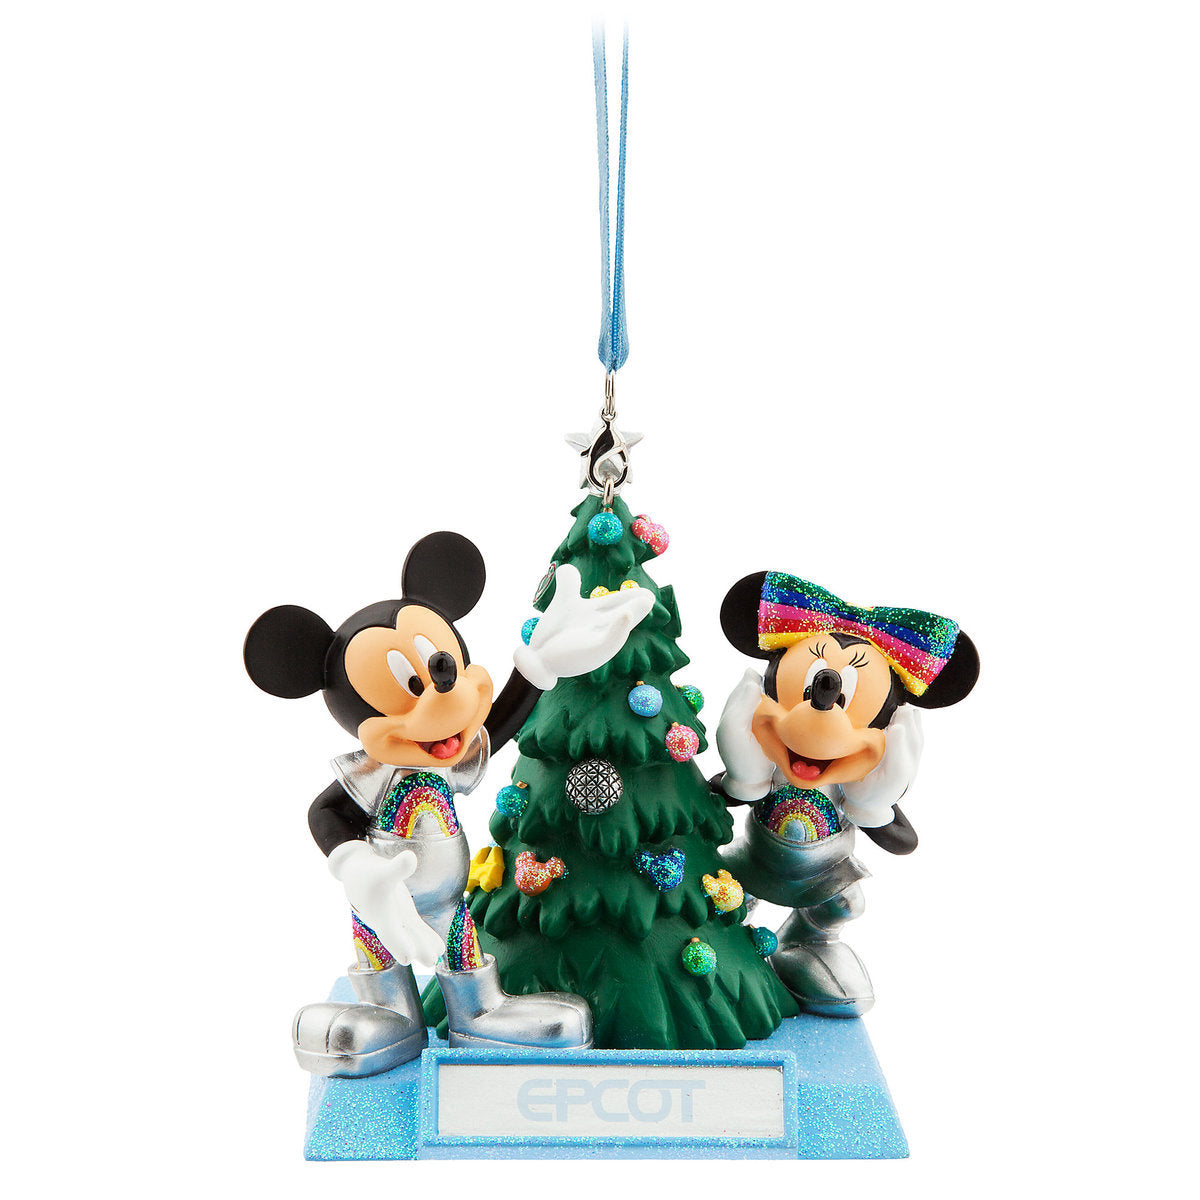 disney world epcot mickey and minnie mouse holiday christmas ornament themepark warehouse - Minnie Mouse Christmas Ornament